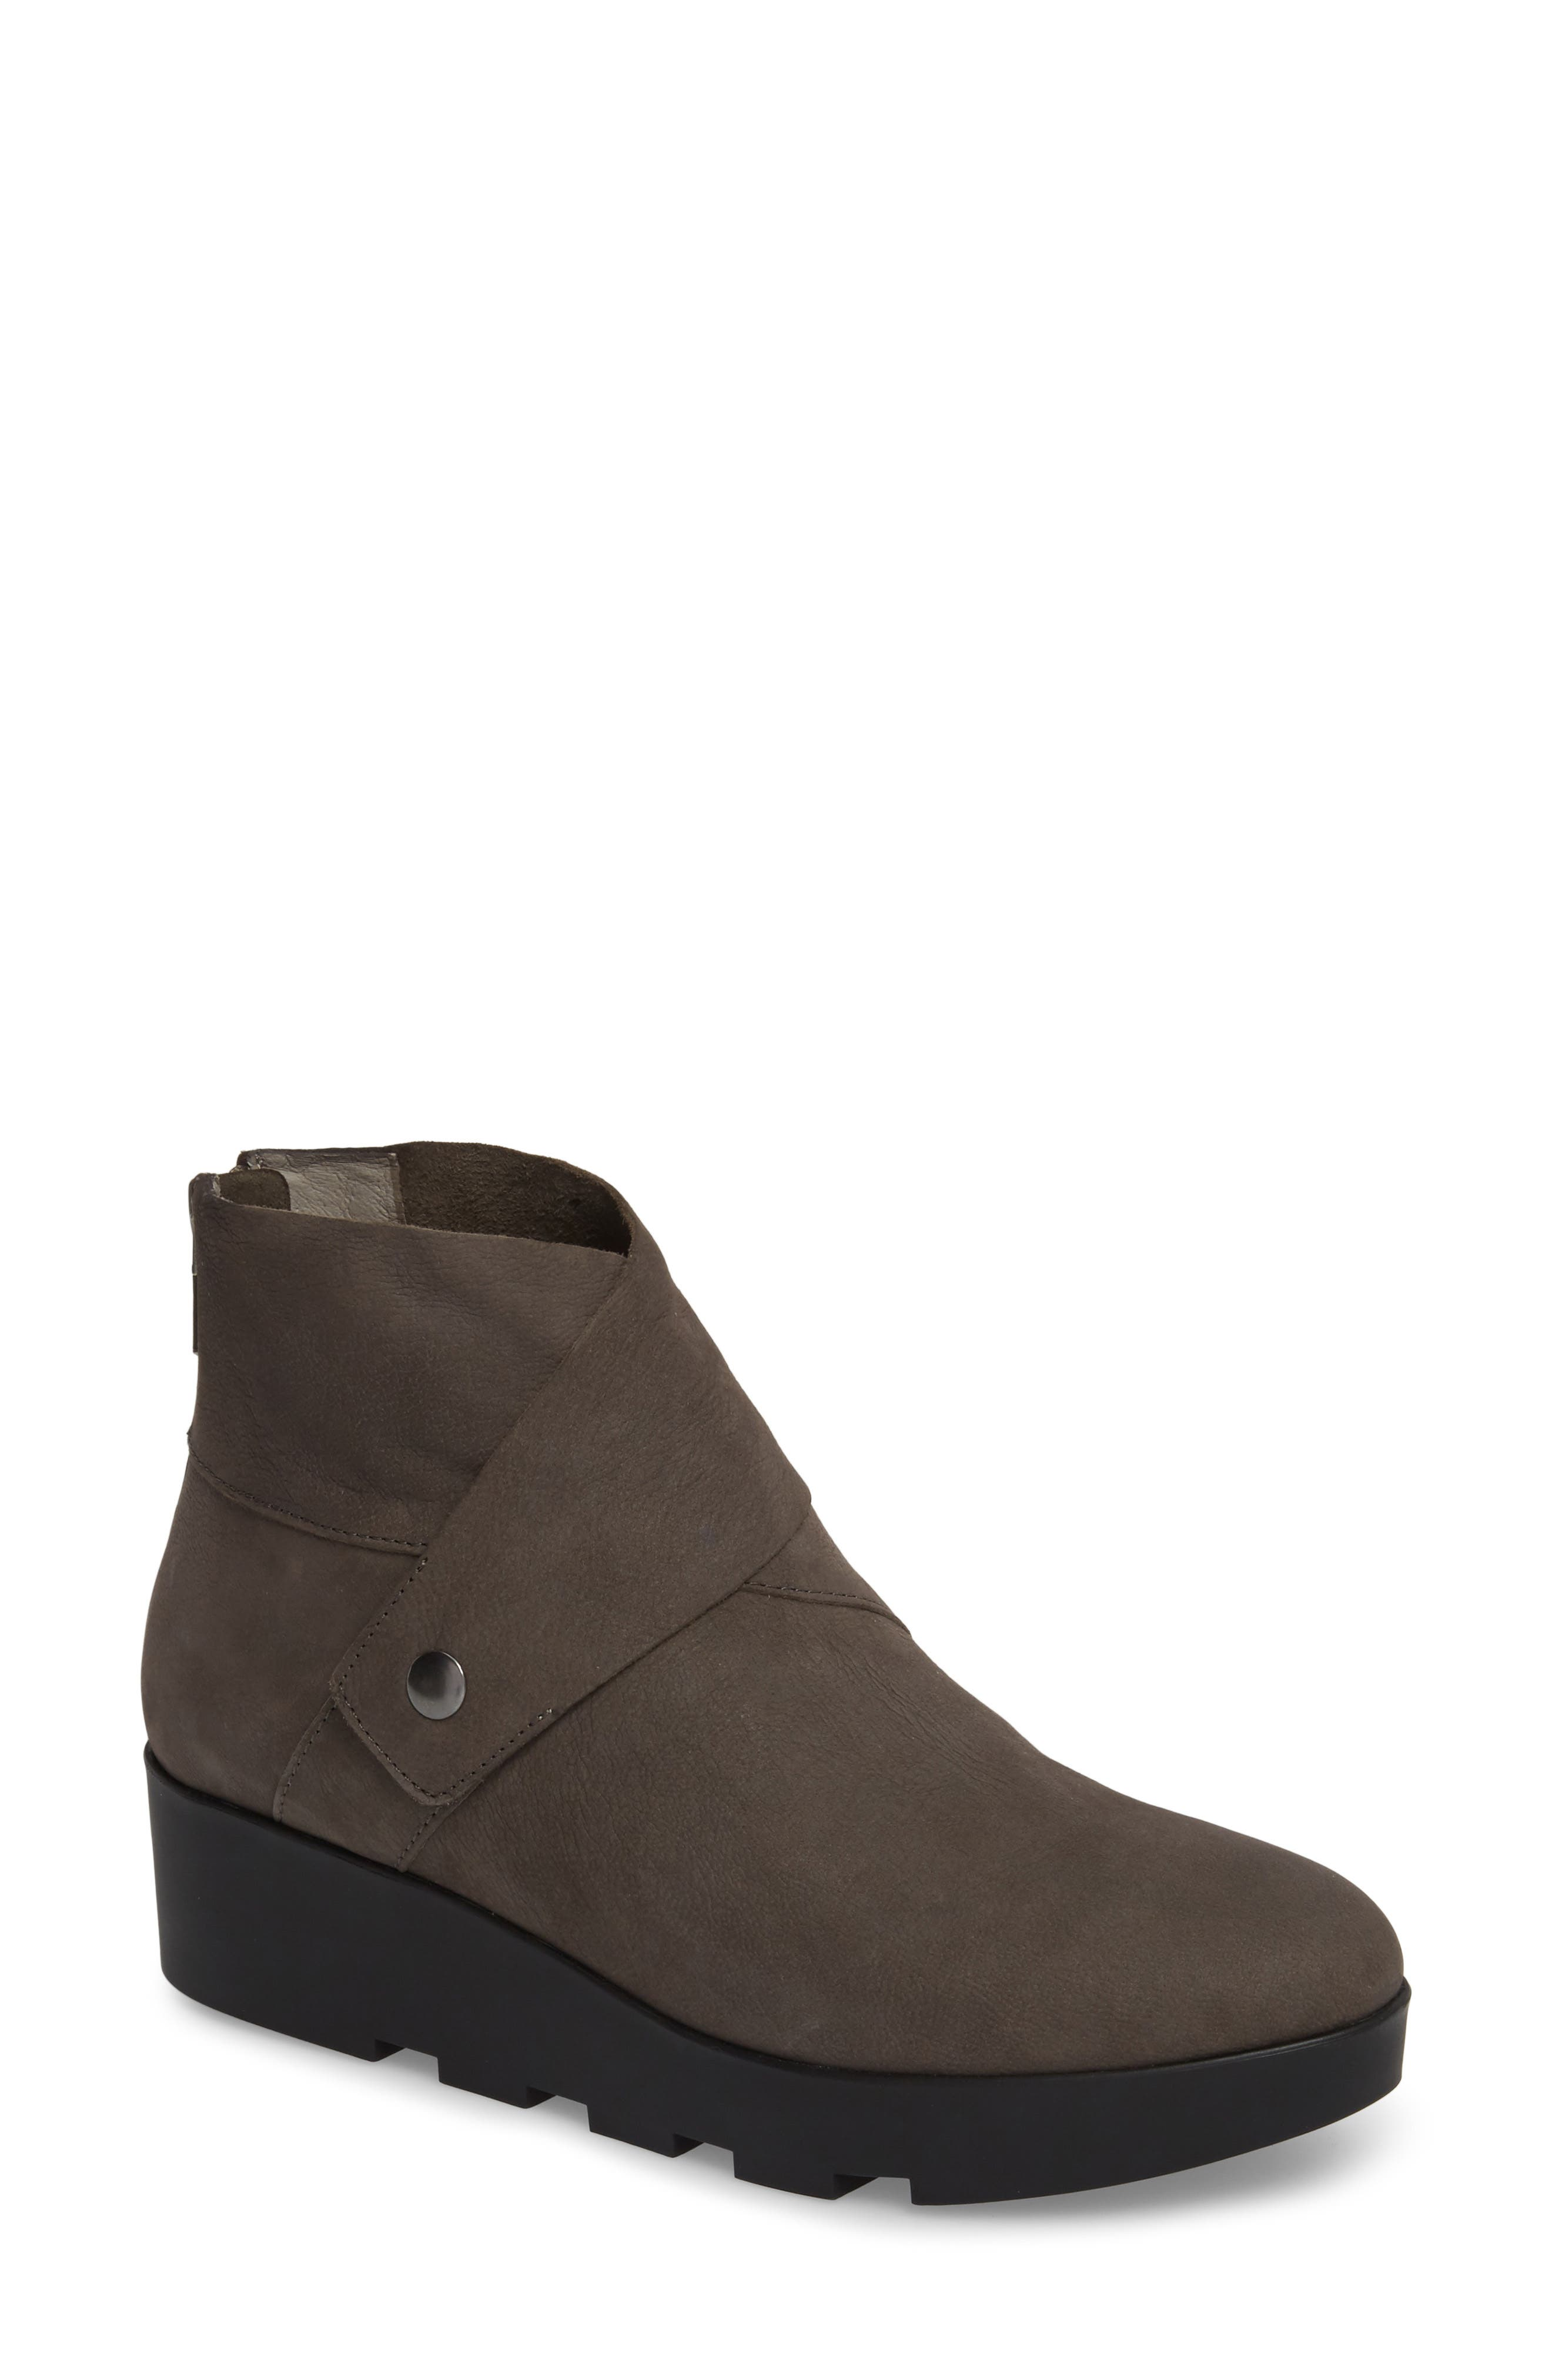 Tread Wedge Bootie,                             Main thumbnail 1, color,                             Graphite Nubuck